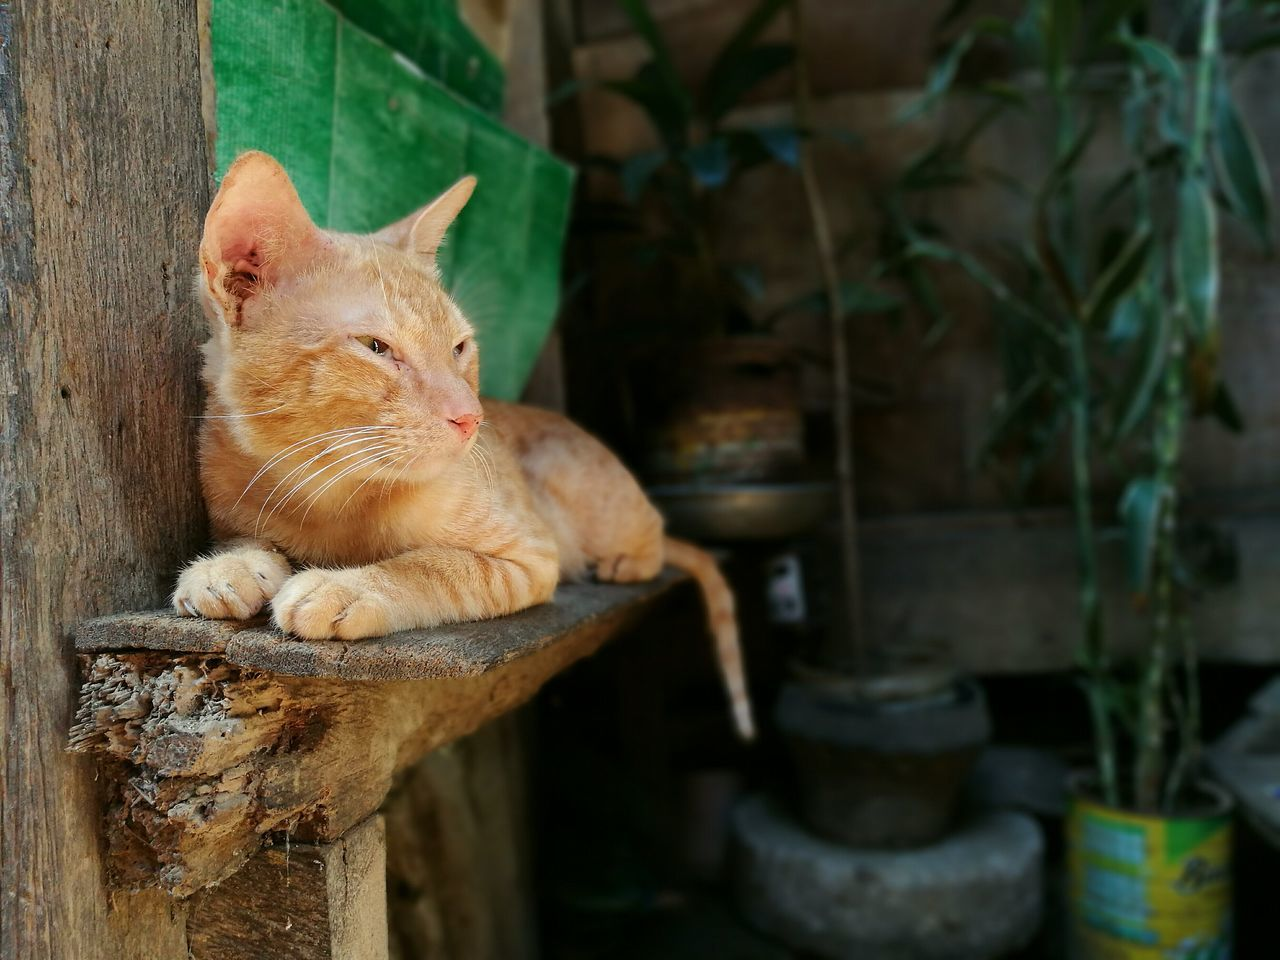 domestic cat, animal themes, mammal, feline, domestic animals, no people, relaxation, pets, one animal, day, outdoors, ginger cat, nature, close-up